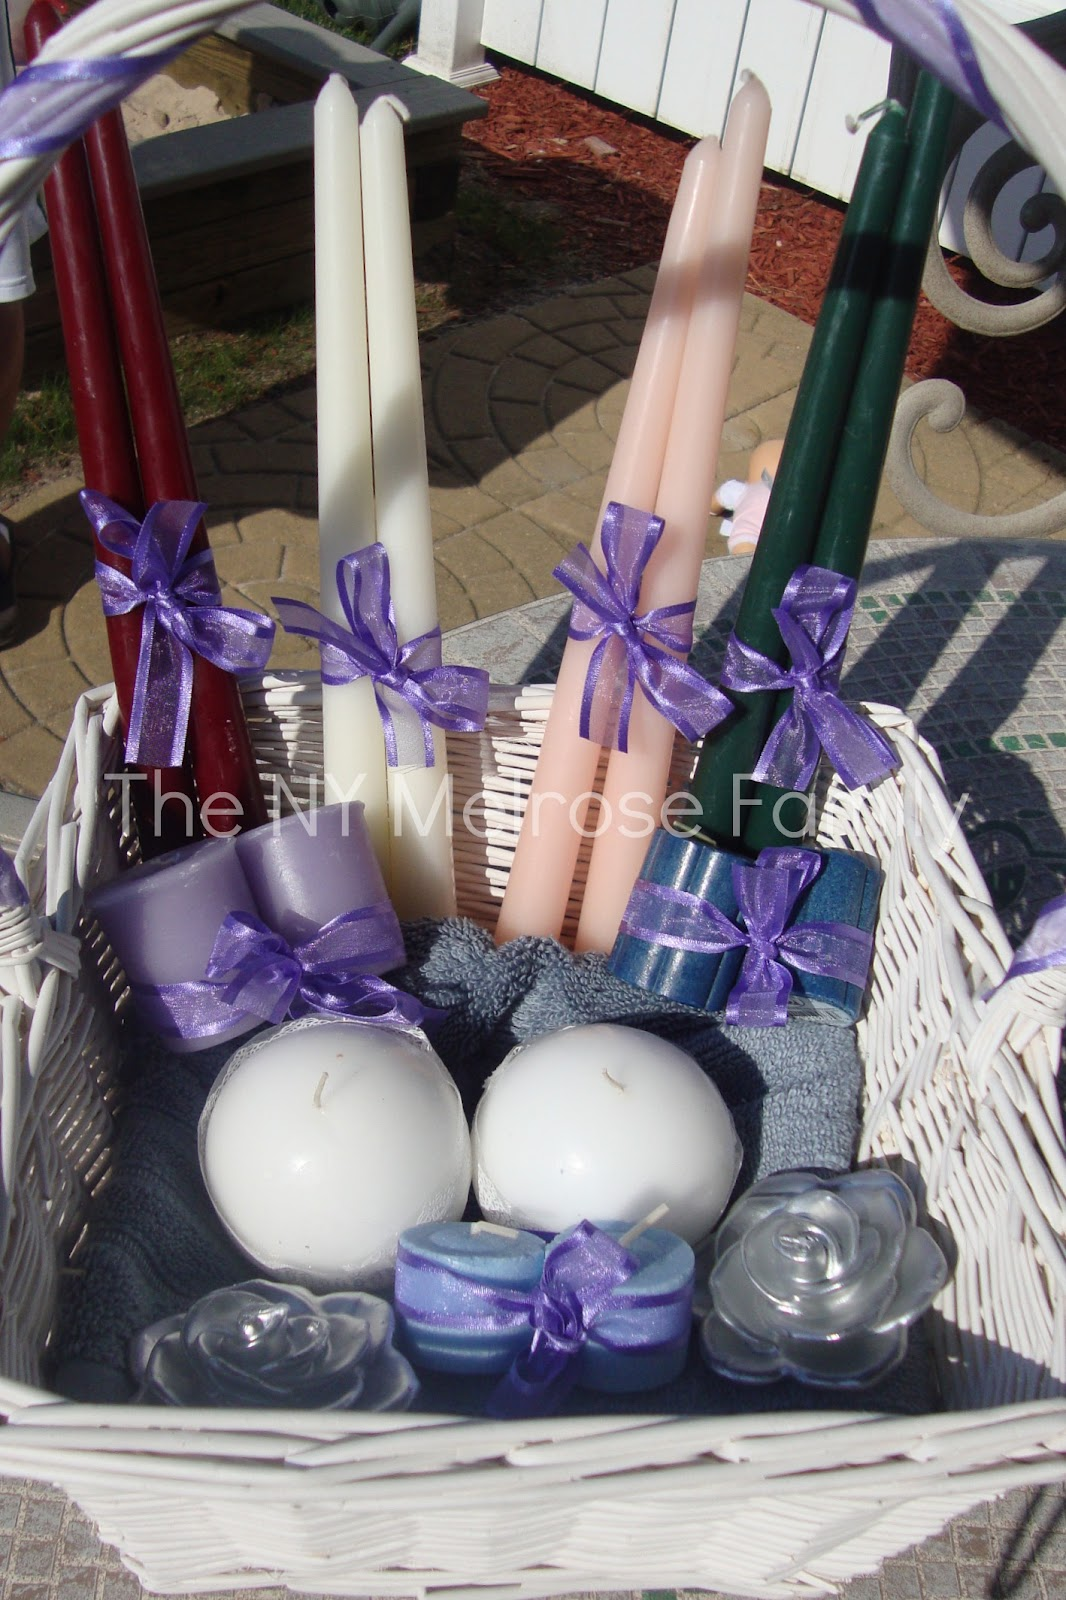 Wedding Shower Gift Basket Poem : Bridal Shower Gift: Candle Poem BasketThe Melrose Family